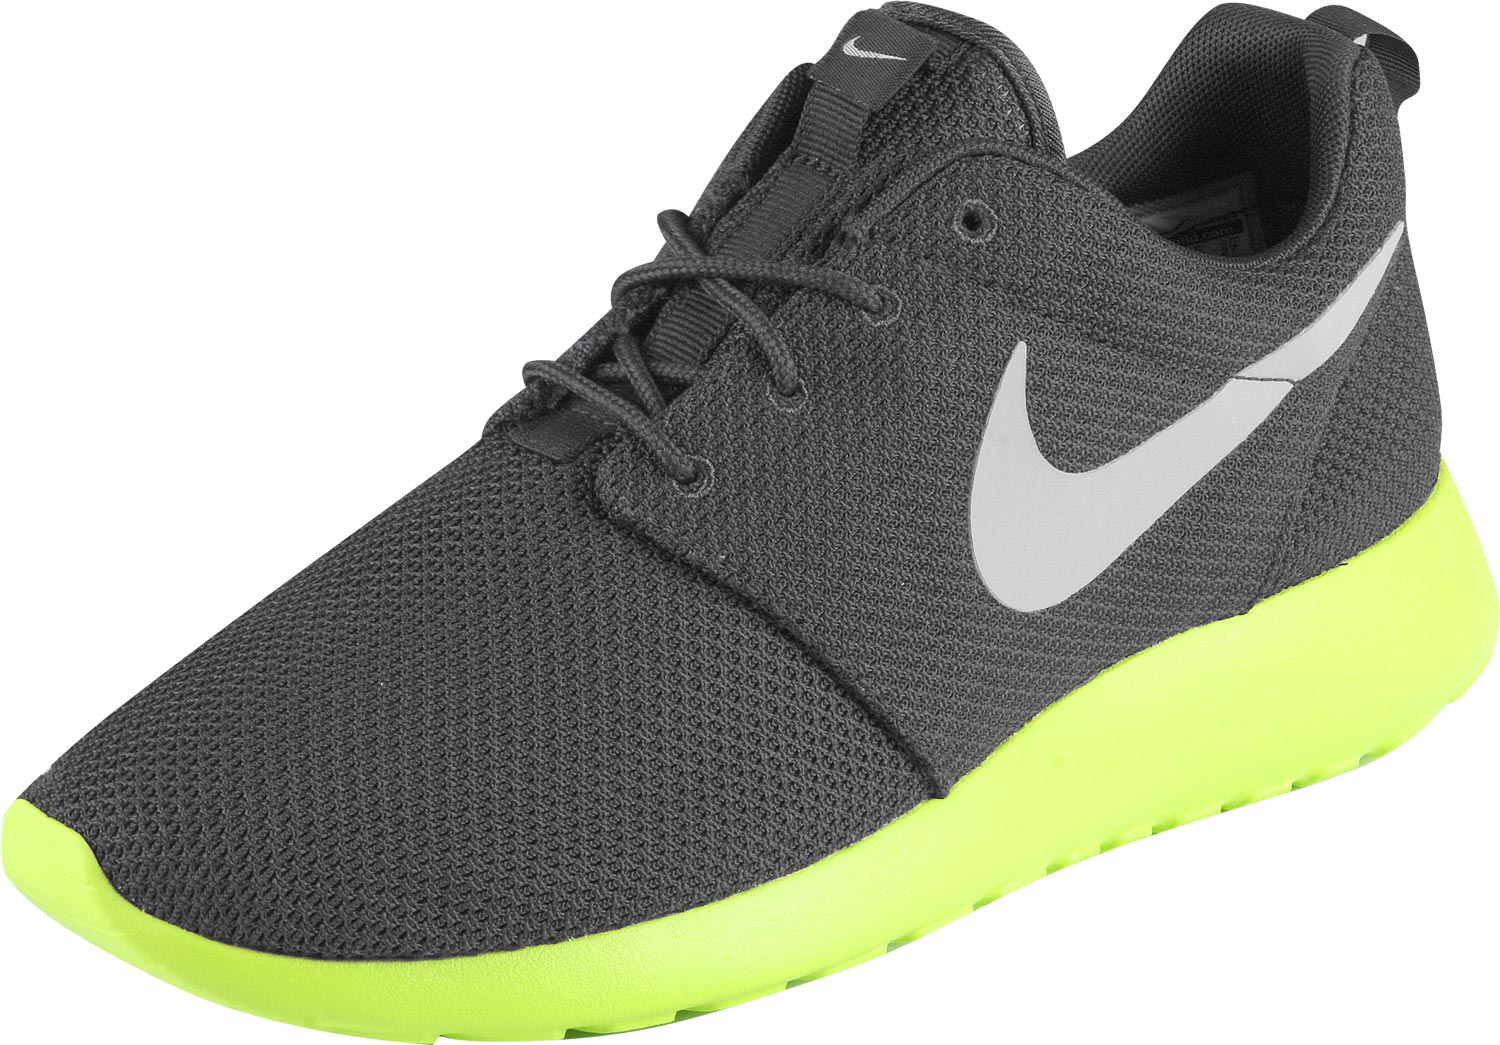 anvfsw green and grey roshe runs -